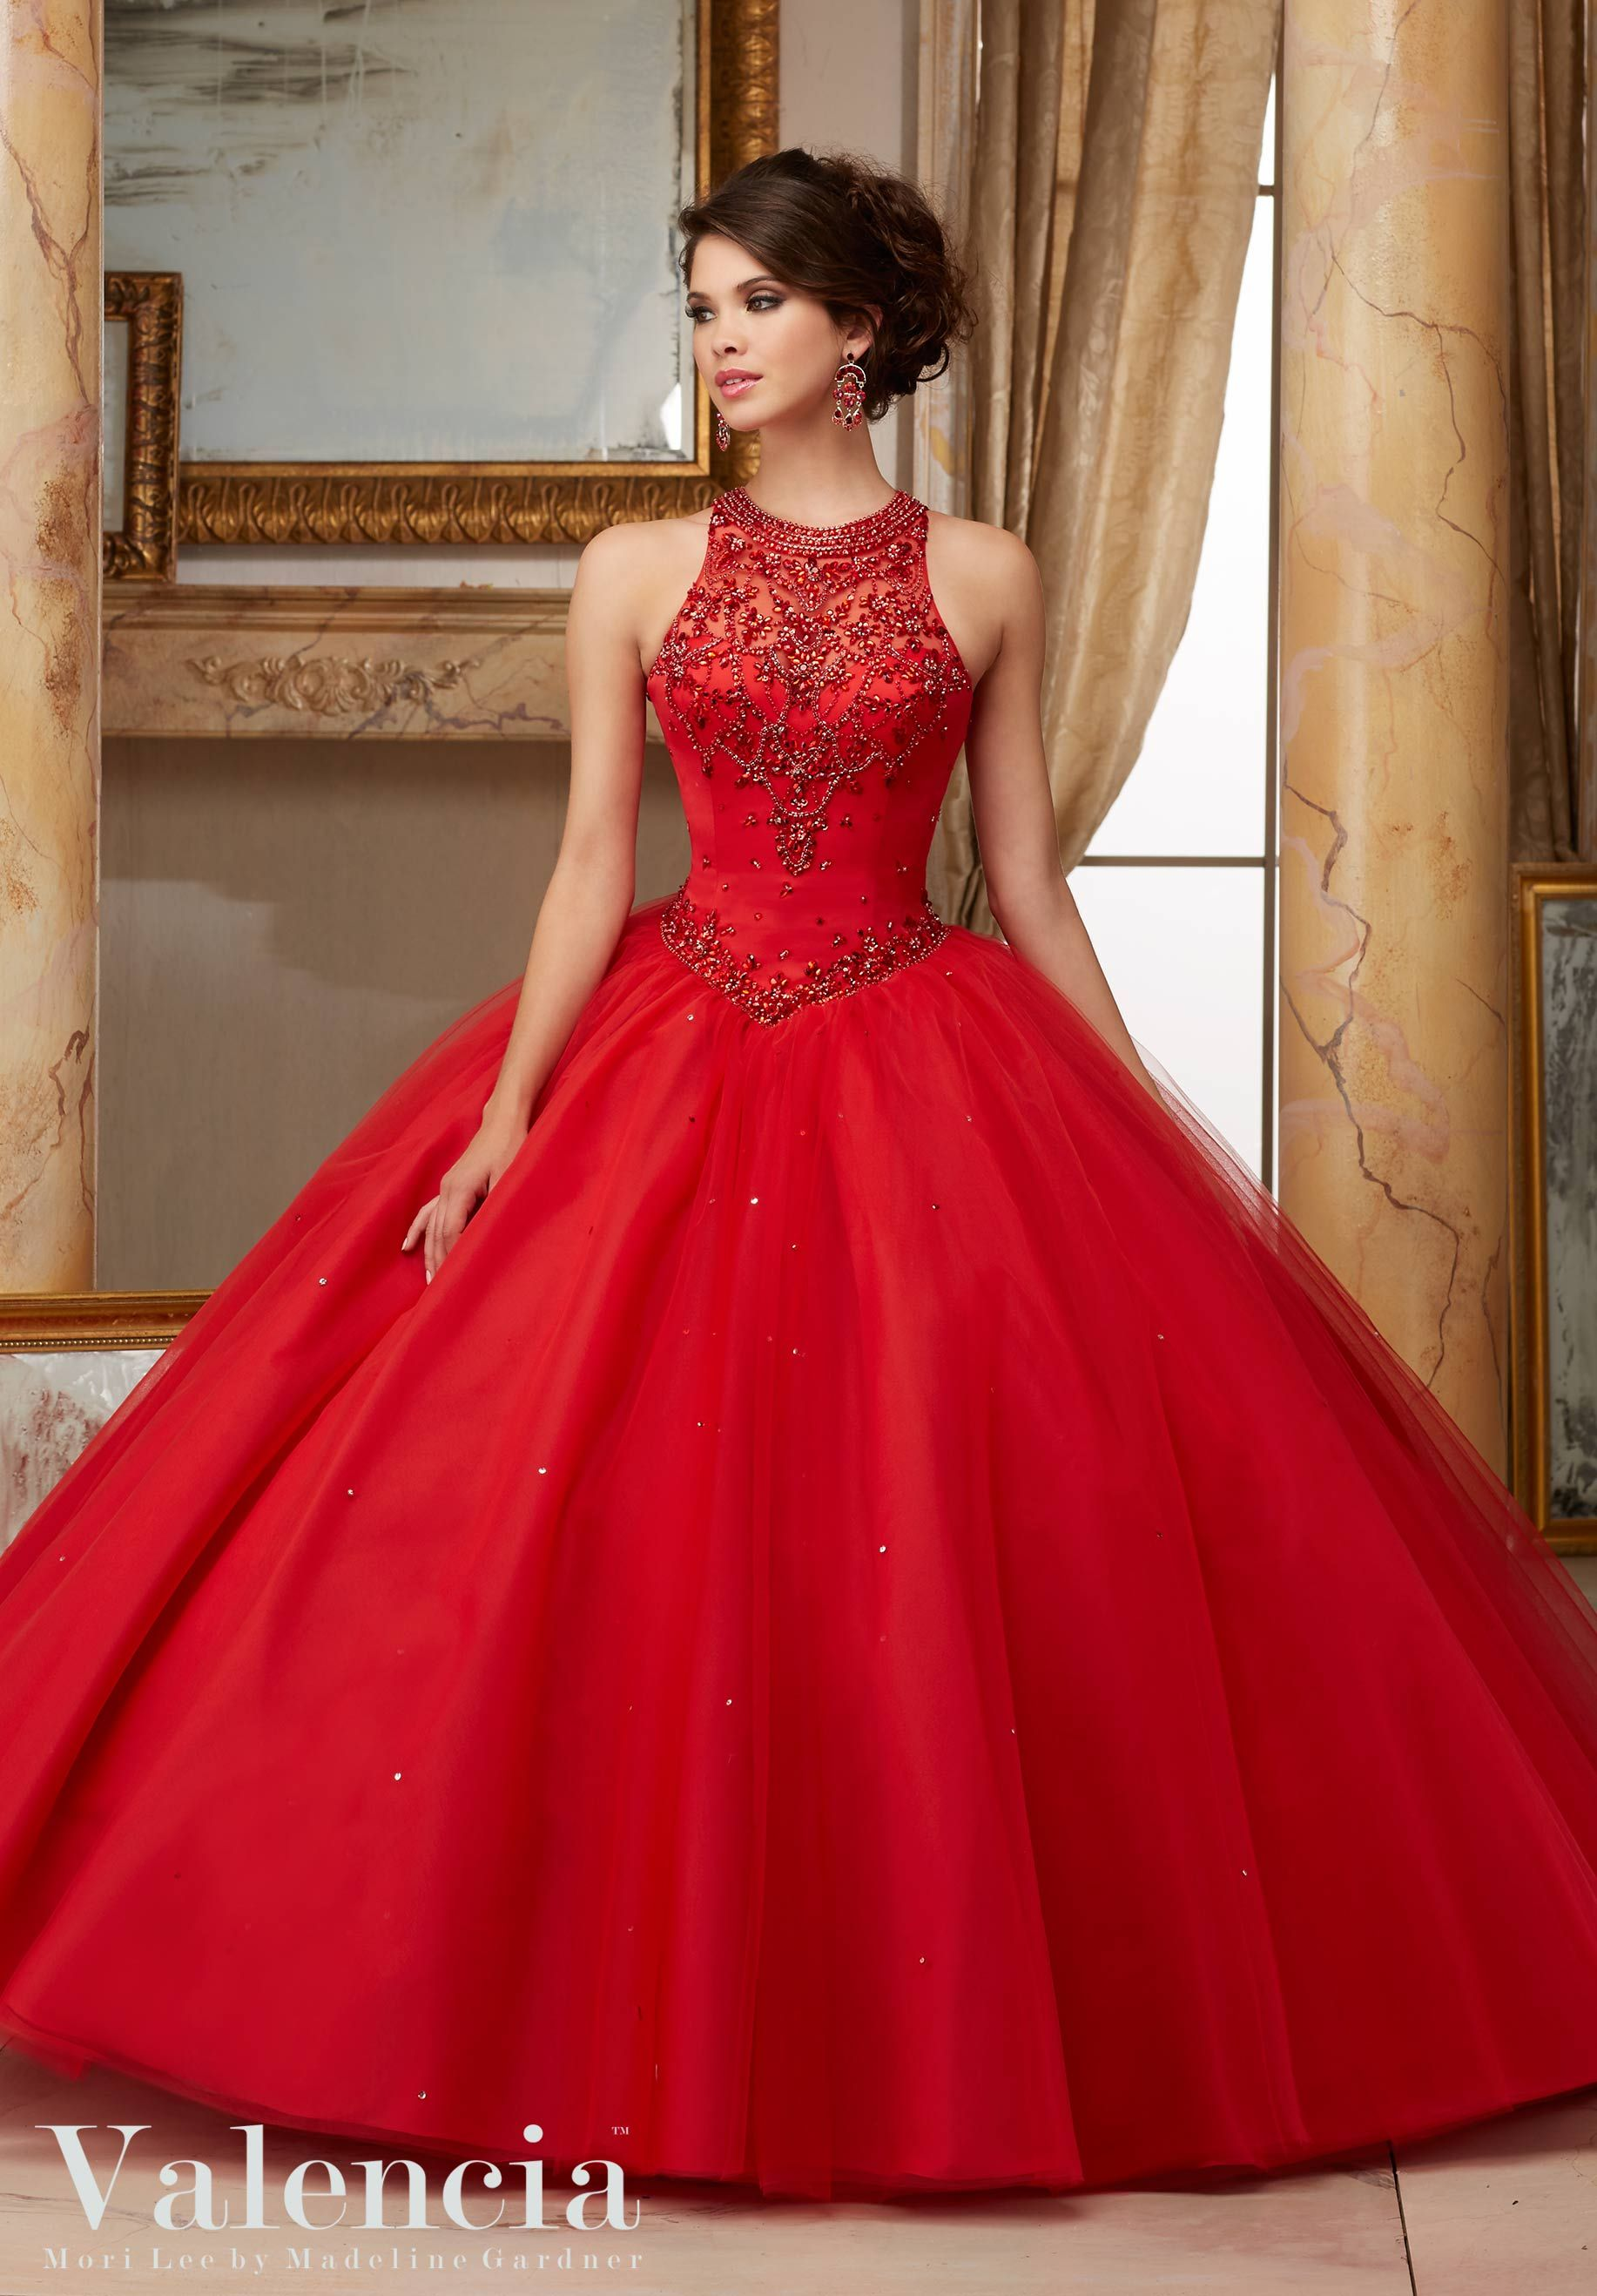 Jeweled Beaded Satin Bodice on Tulle Ball Gown Quinceanera Dress ...